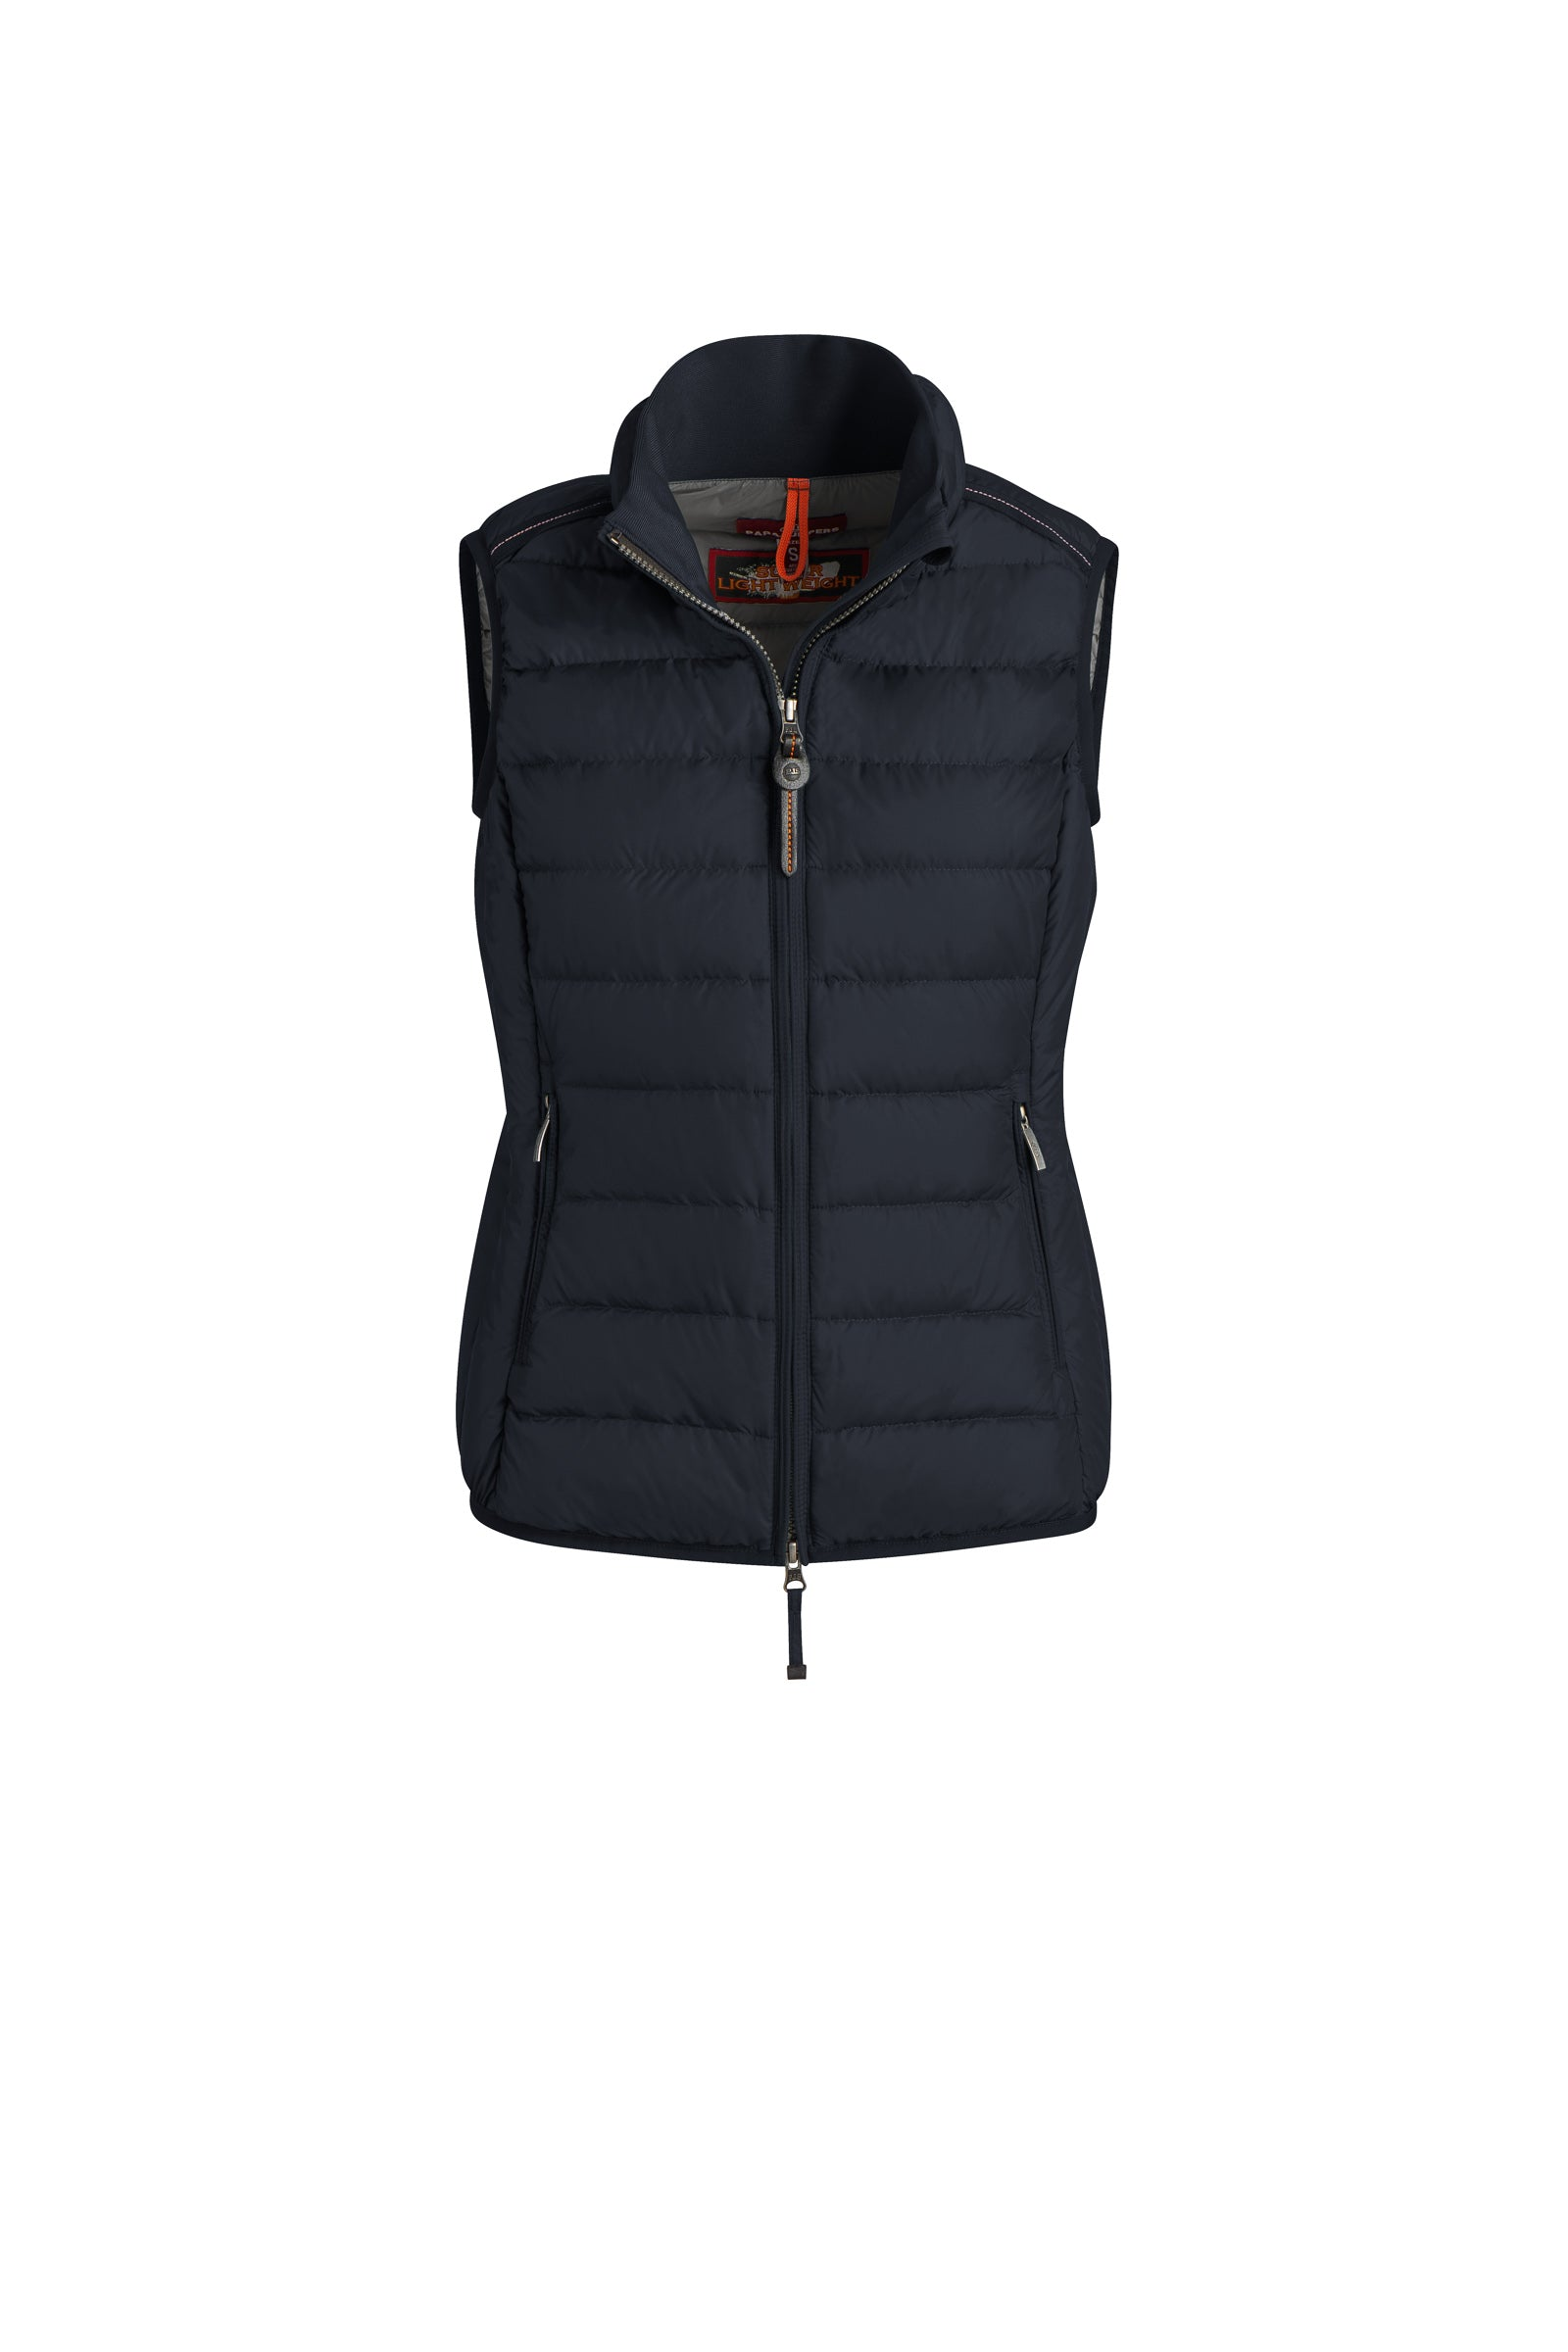 parajumpers womens vest